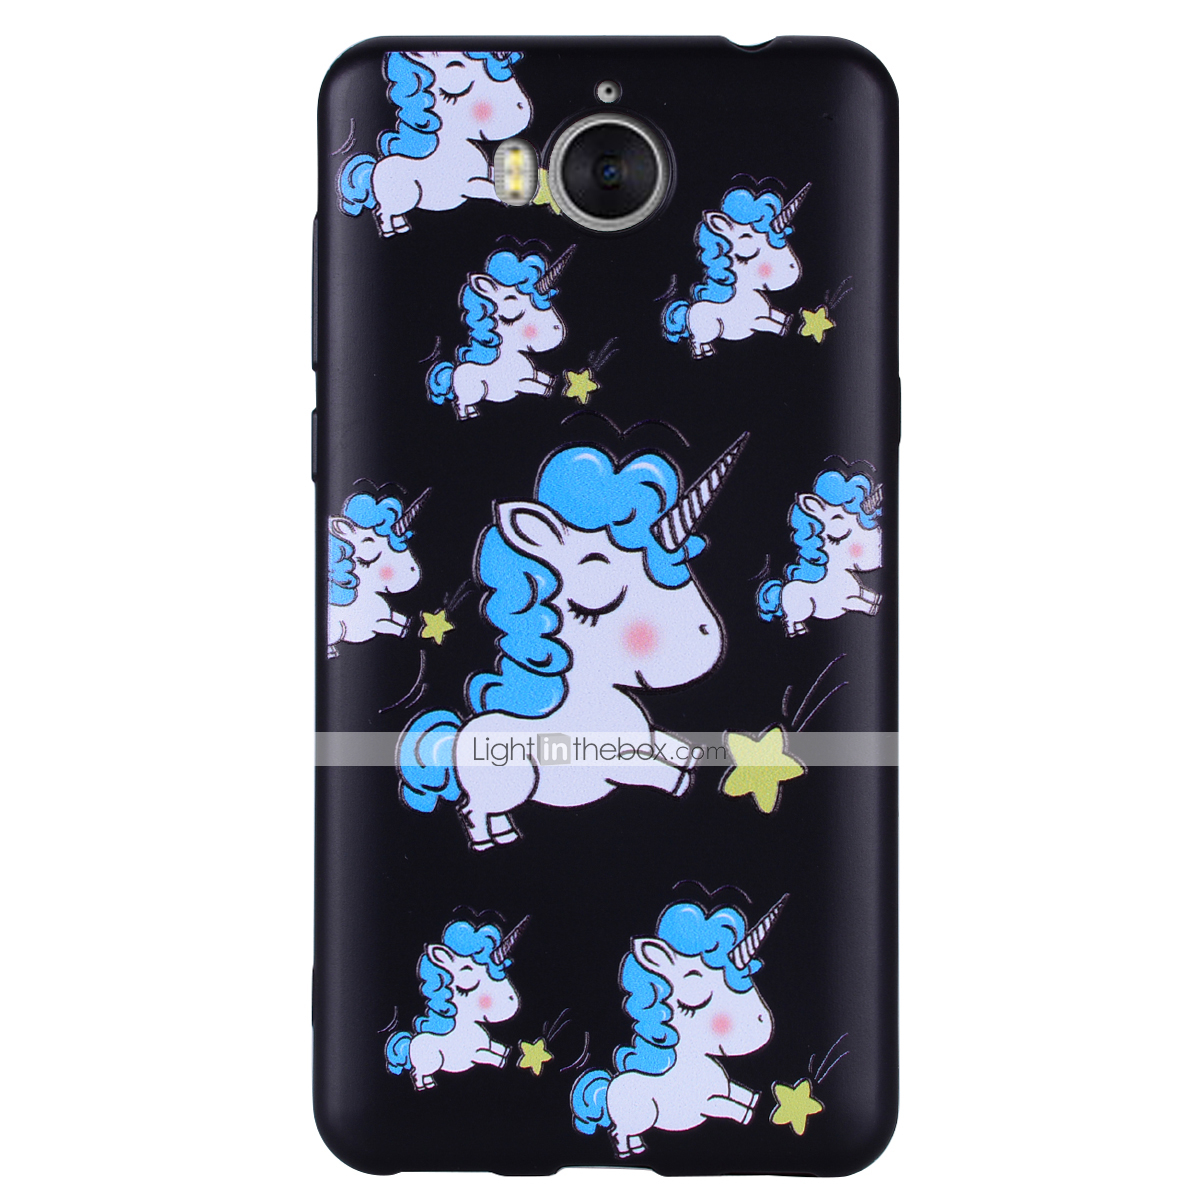 release date 58972 846ce Case For Huawei Huawei Y6 (2017)(Nova Young) / Huawei Y5 III(Y5 2017) /  Huawei Y3 (2017) Pattern Back Cover Unicorn Soft Silicone